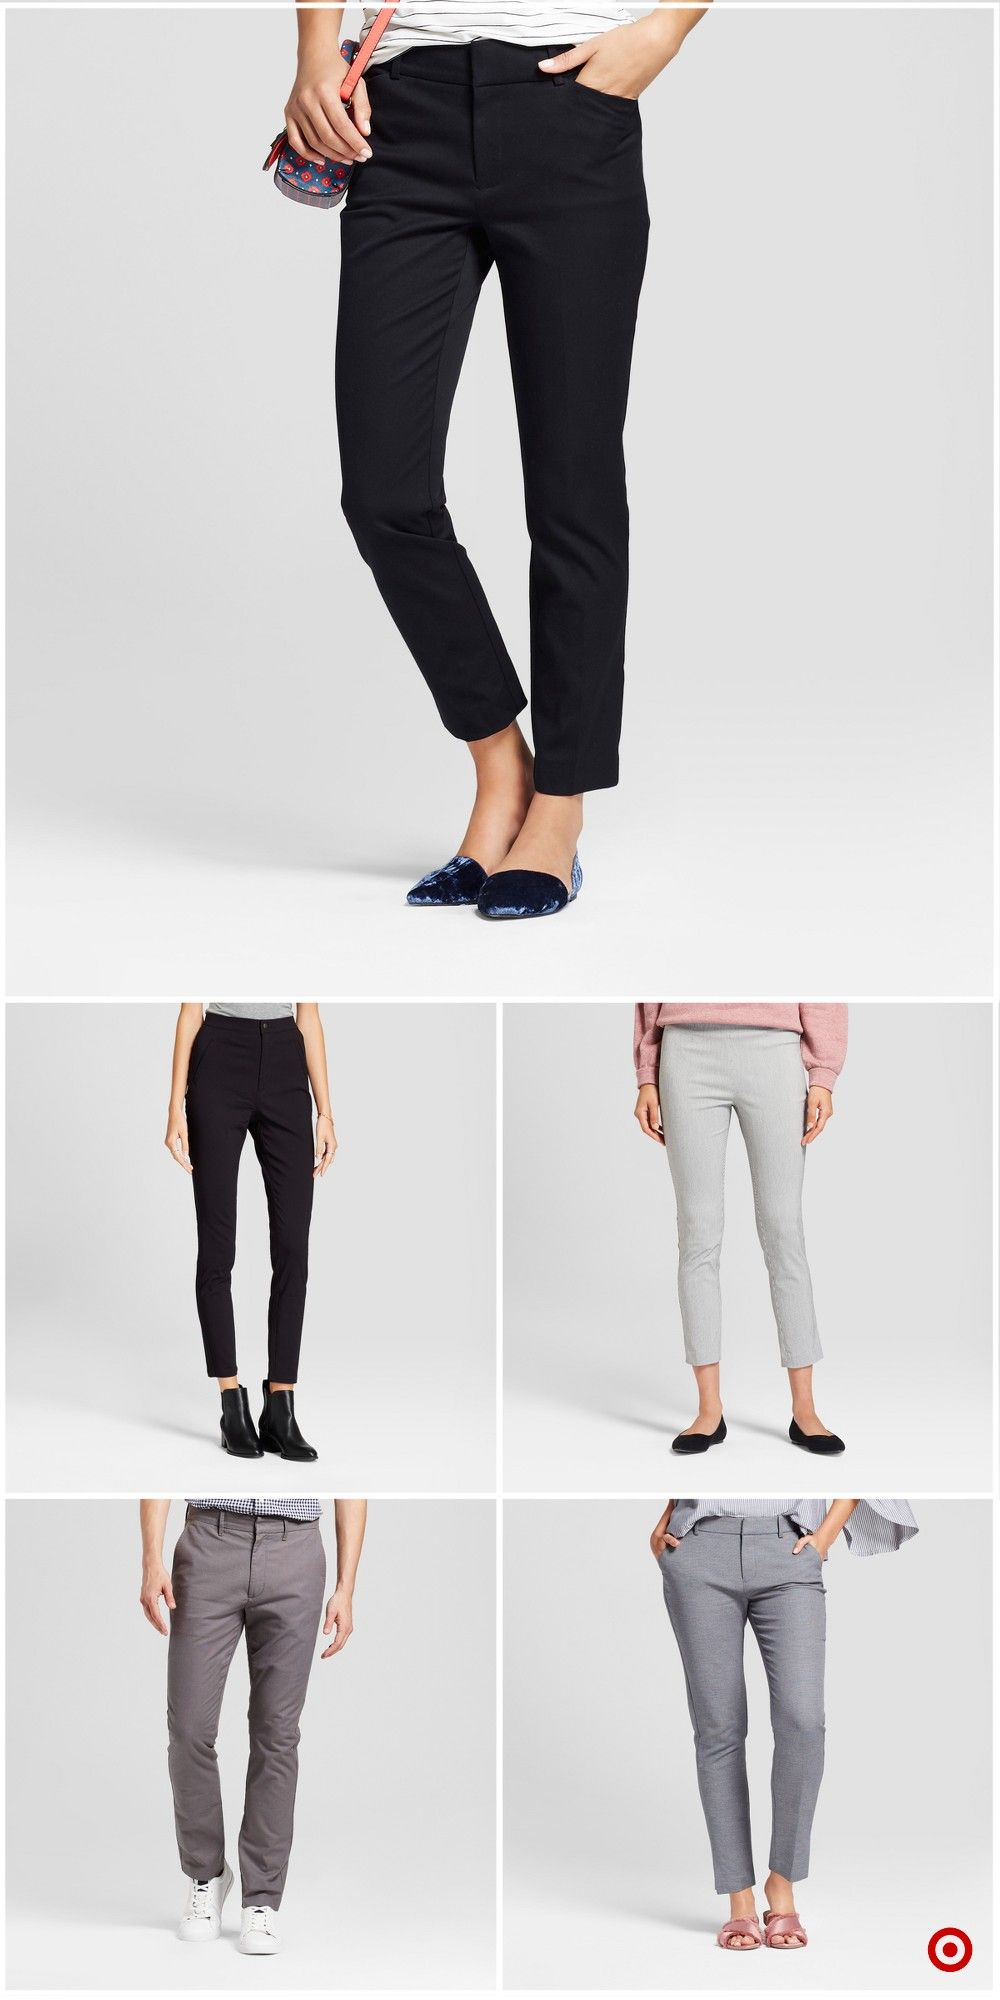 18307b9dfef Shop Target for fashion pants you will love at great low prices. Free  shipping on orders of  35+ or free same-day pick-up in store.